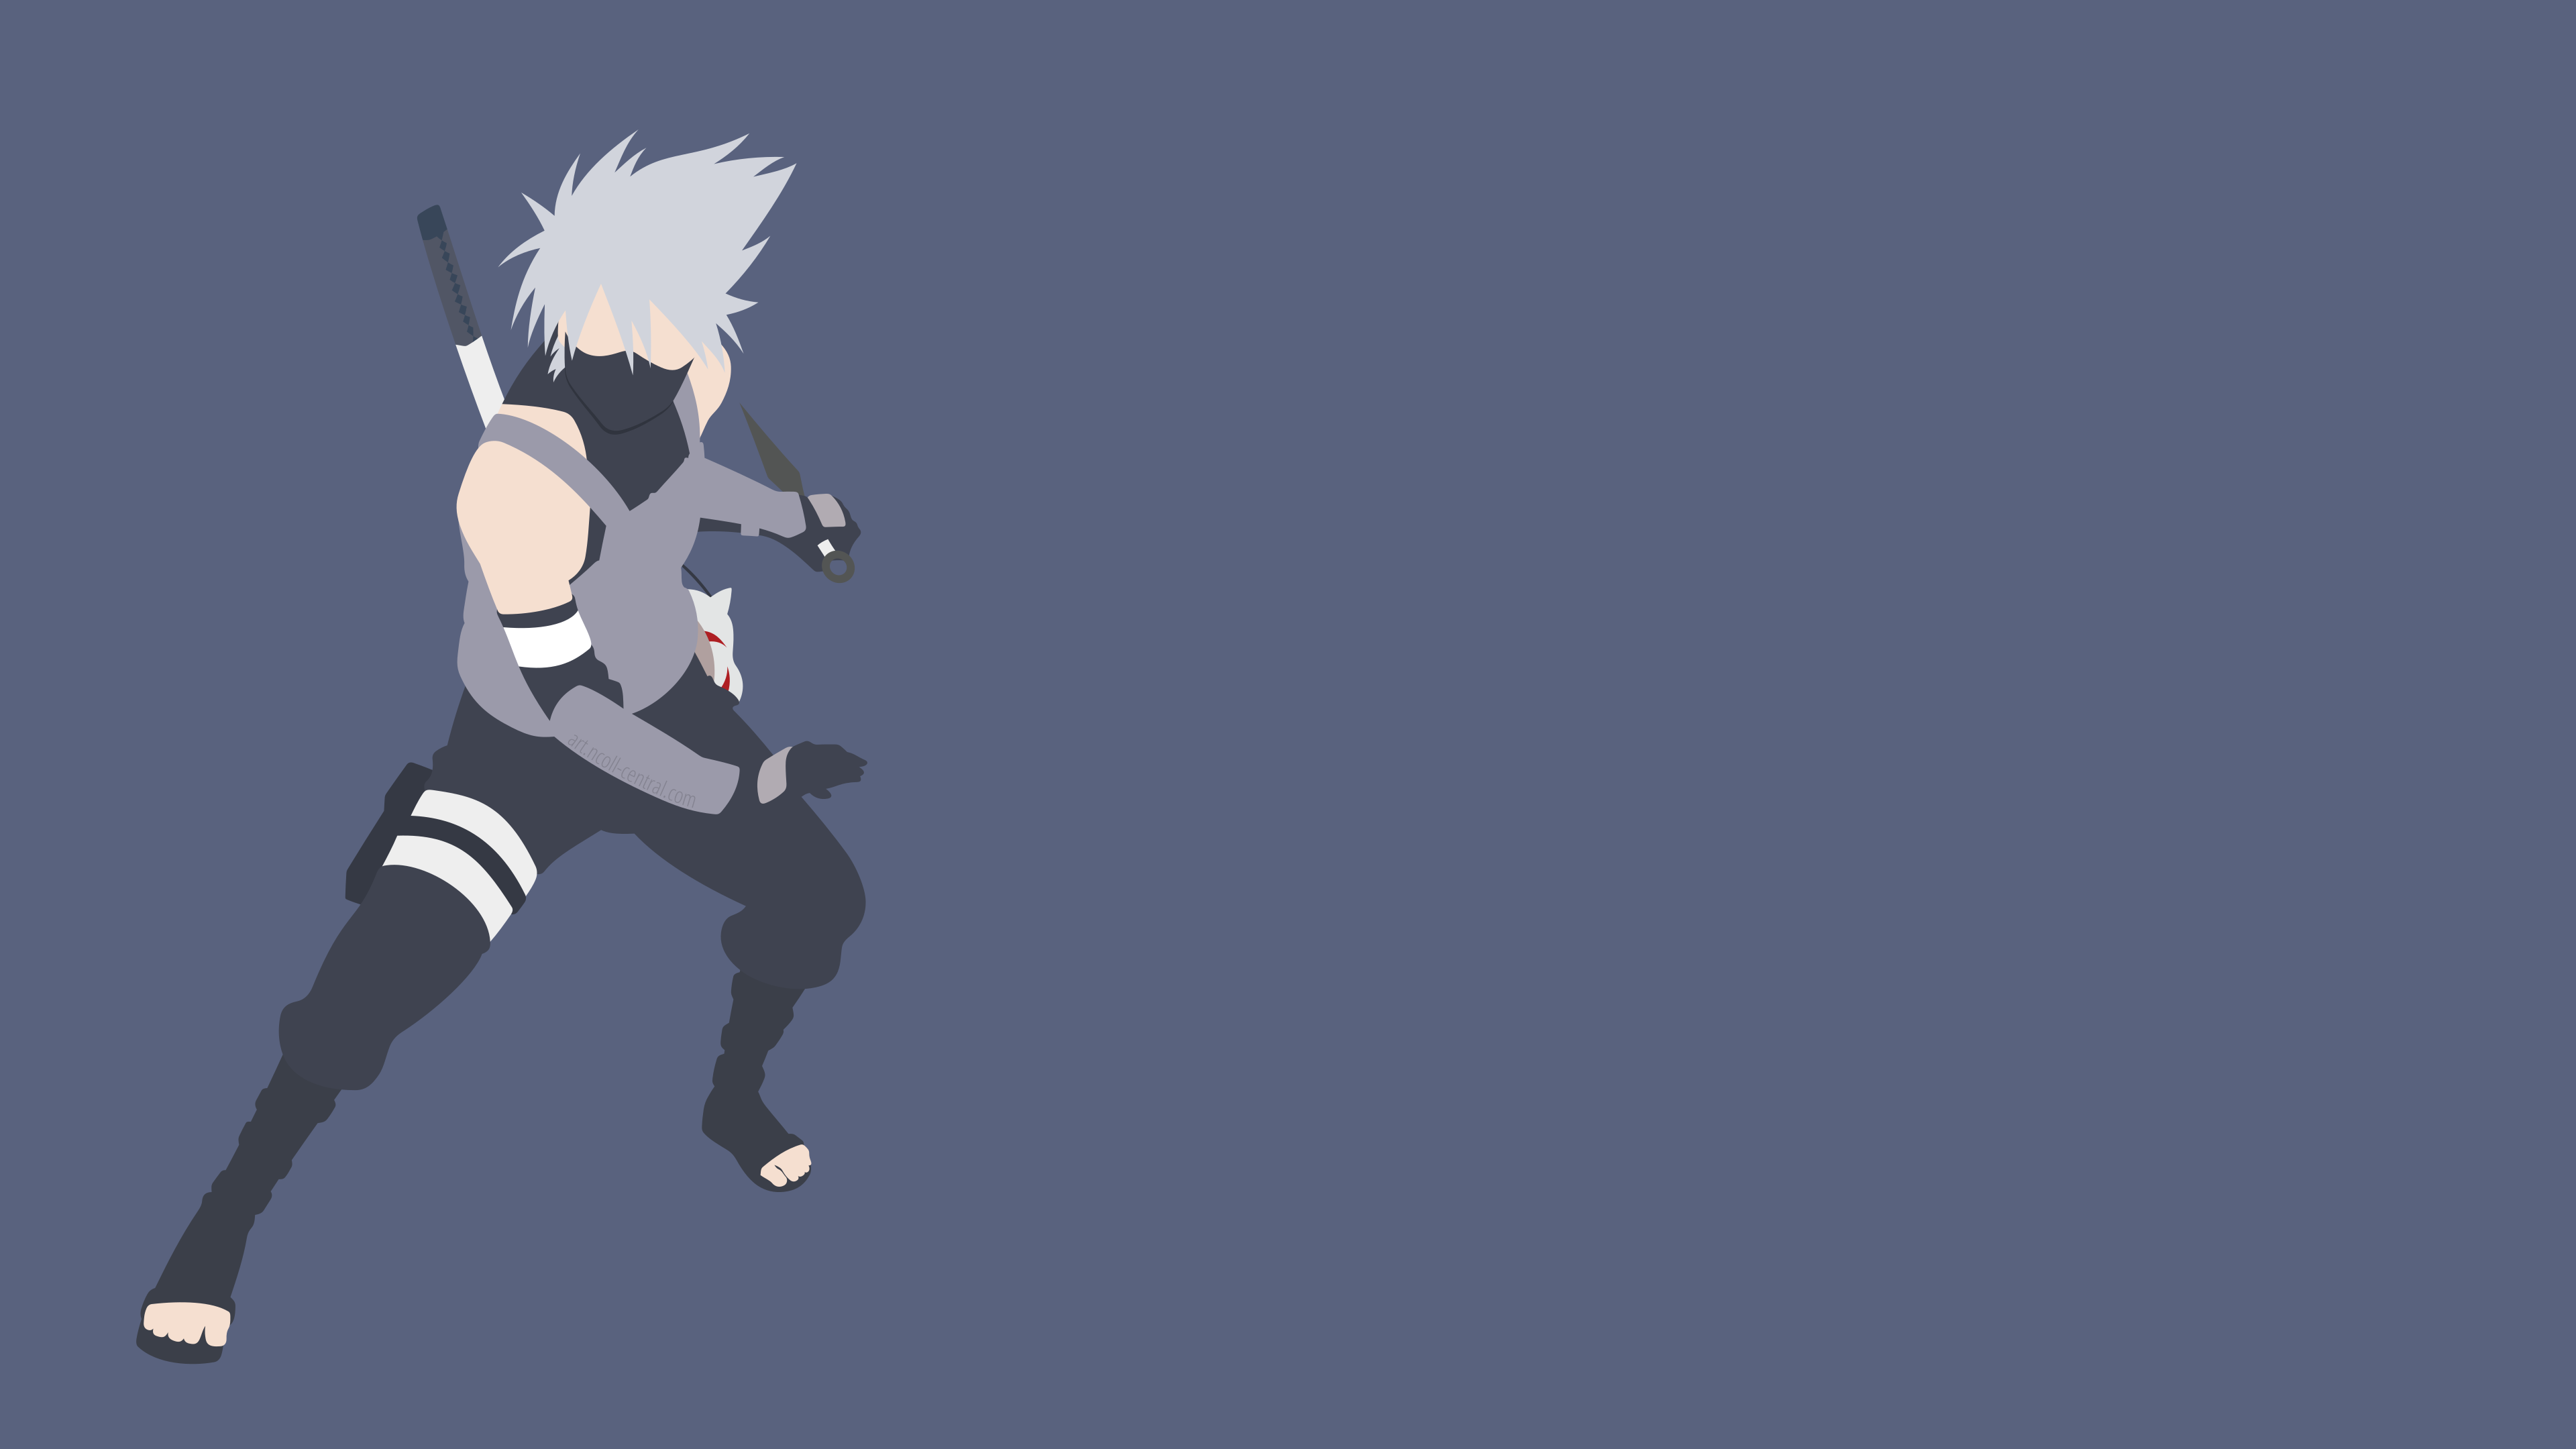 Kakashi Hatake 4k Ultra Hd Wallpaper Background Image